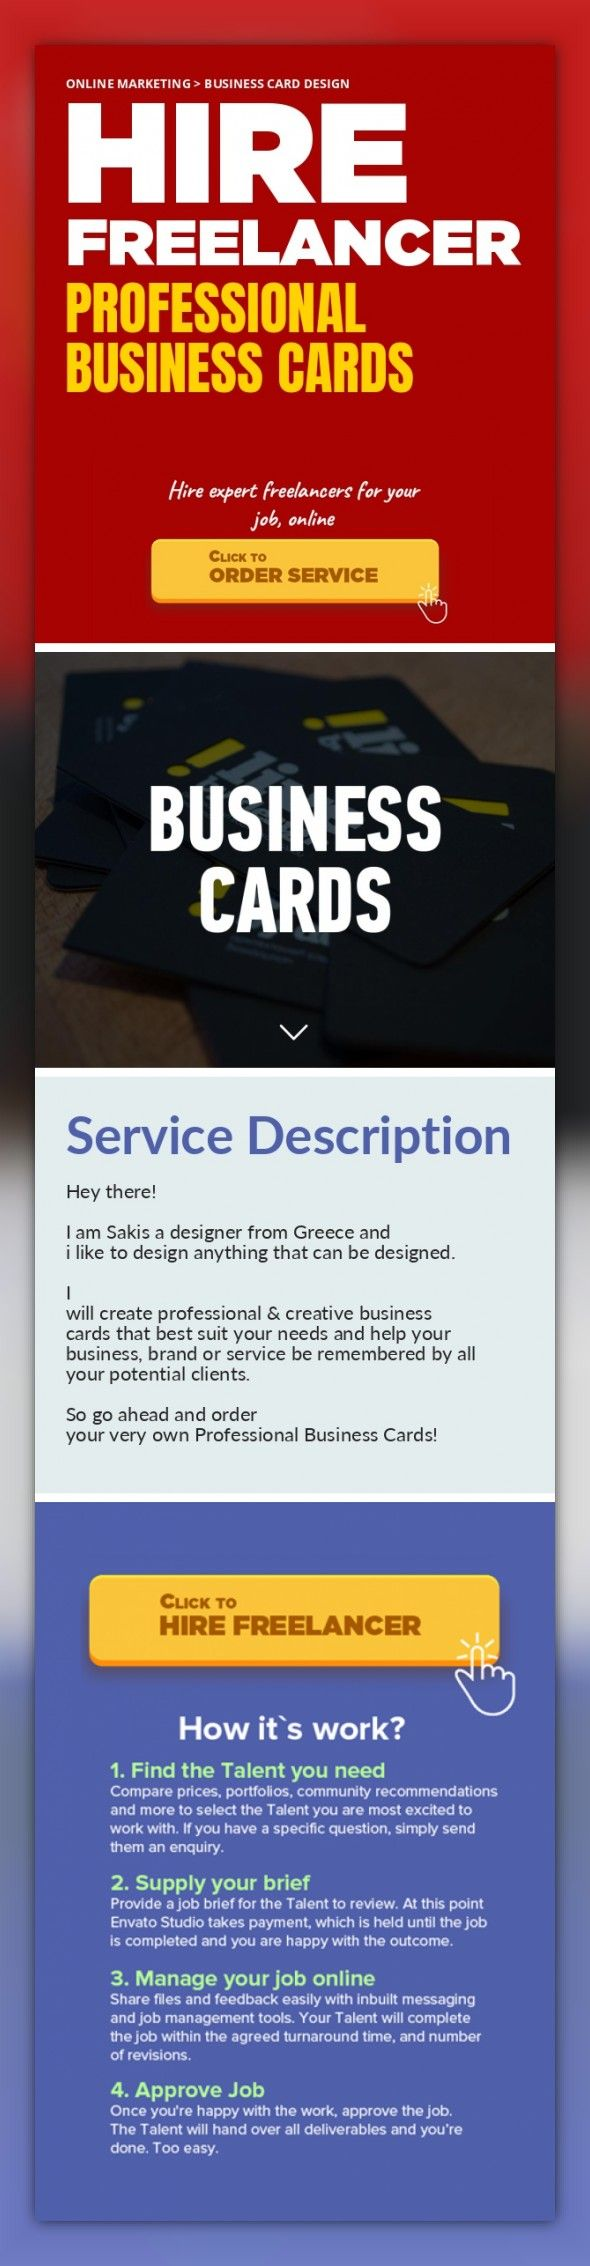 Professional Business Cards Online Marketing, Business Card Design ...